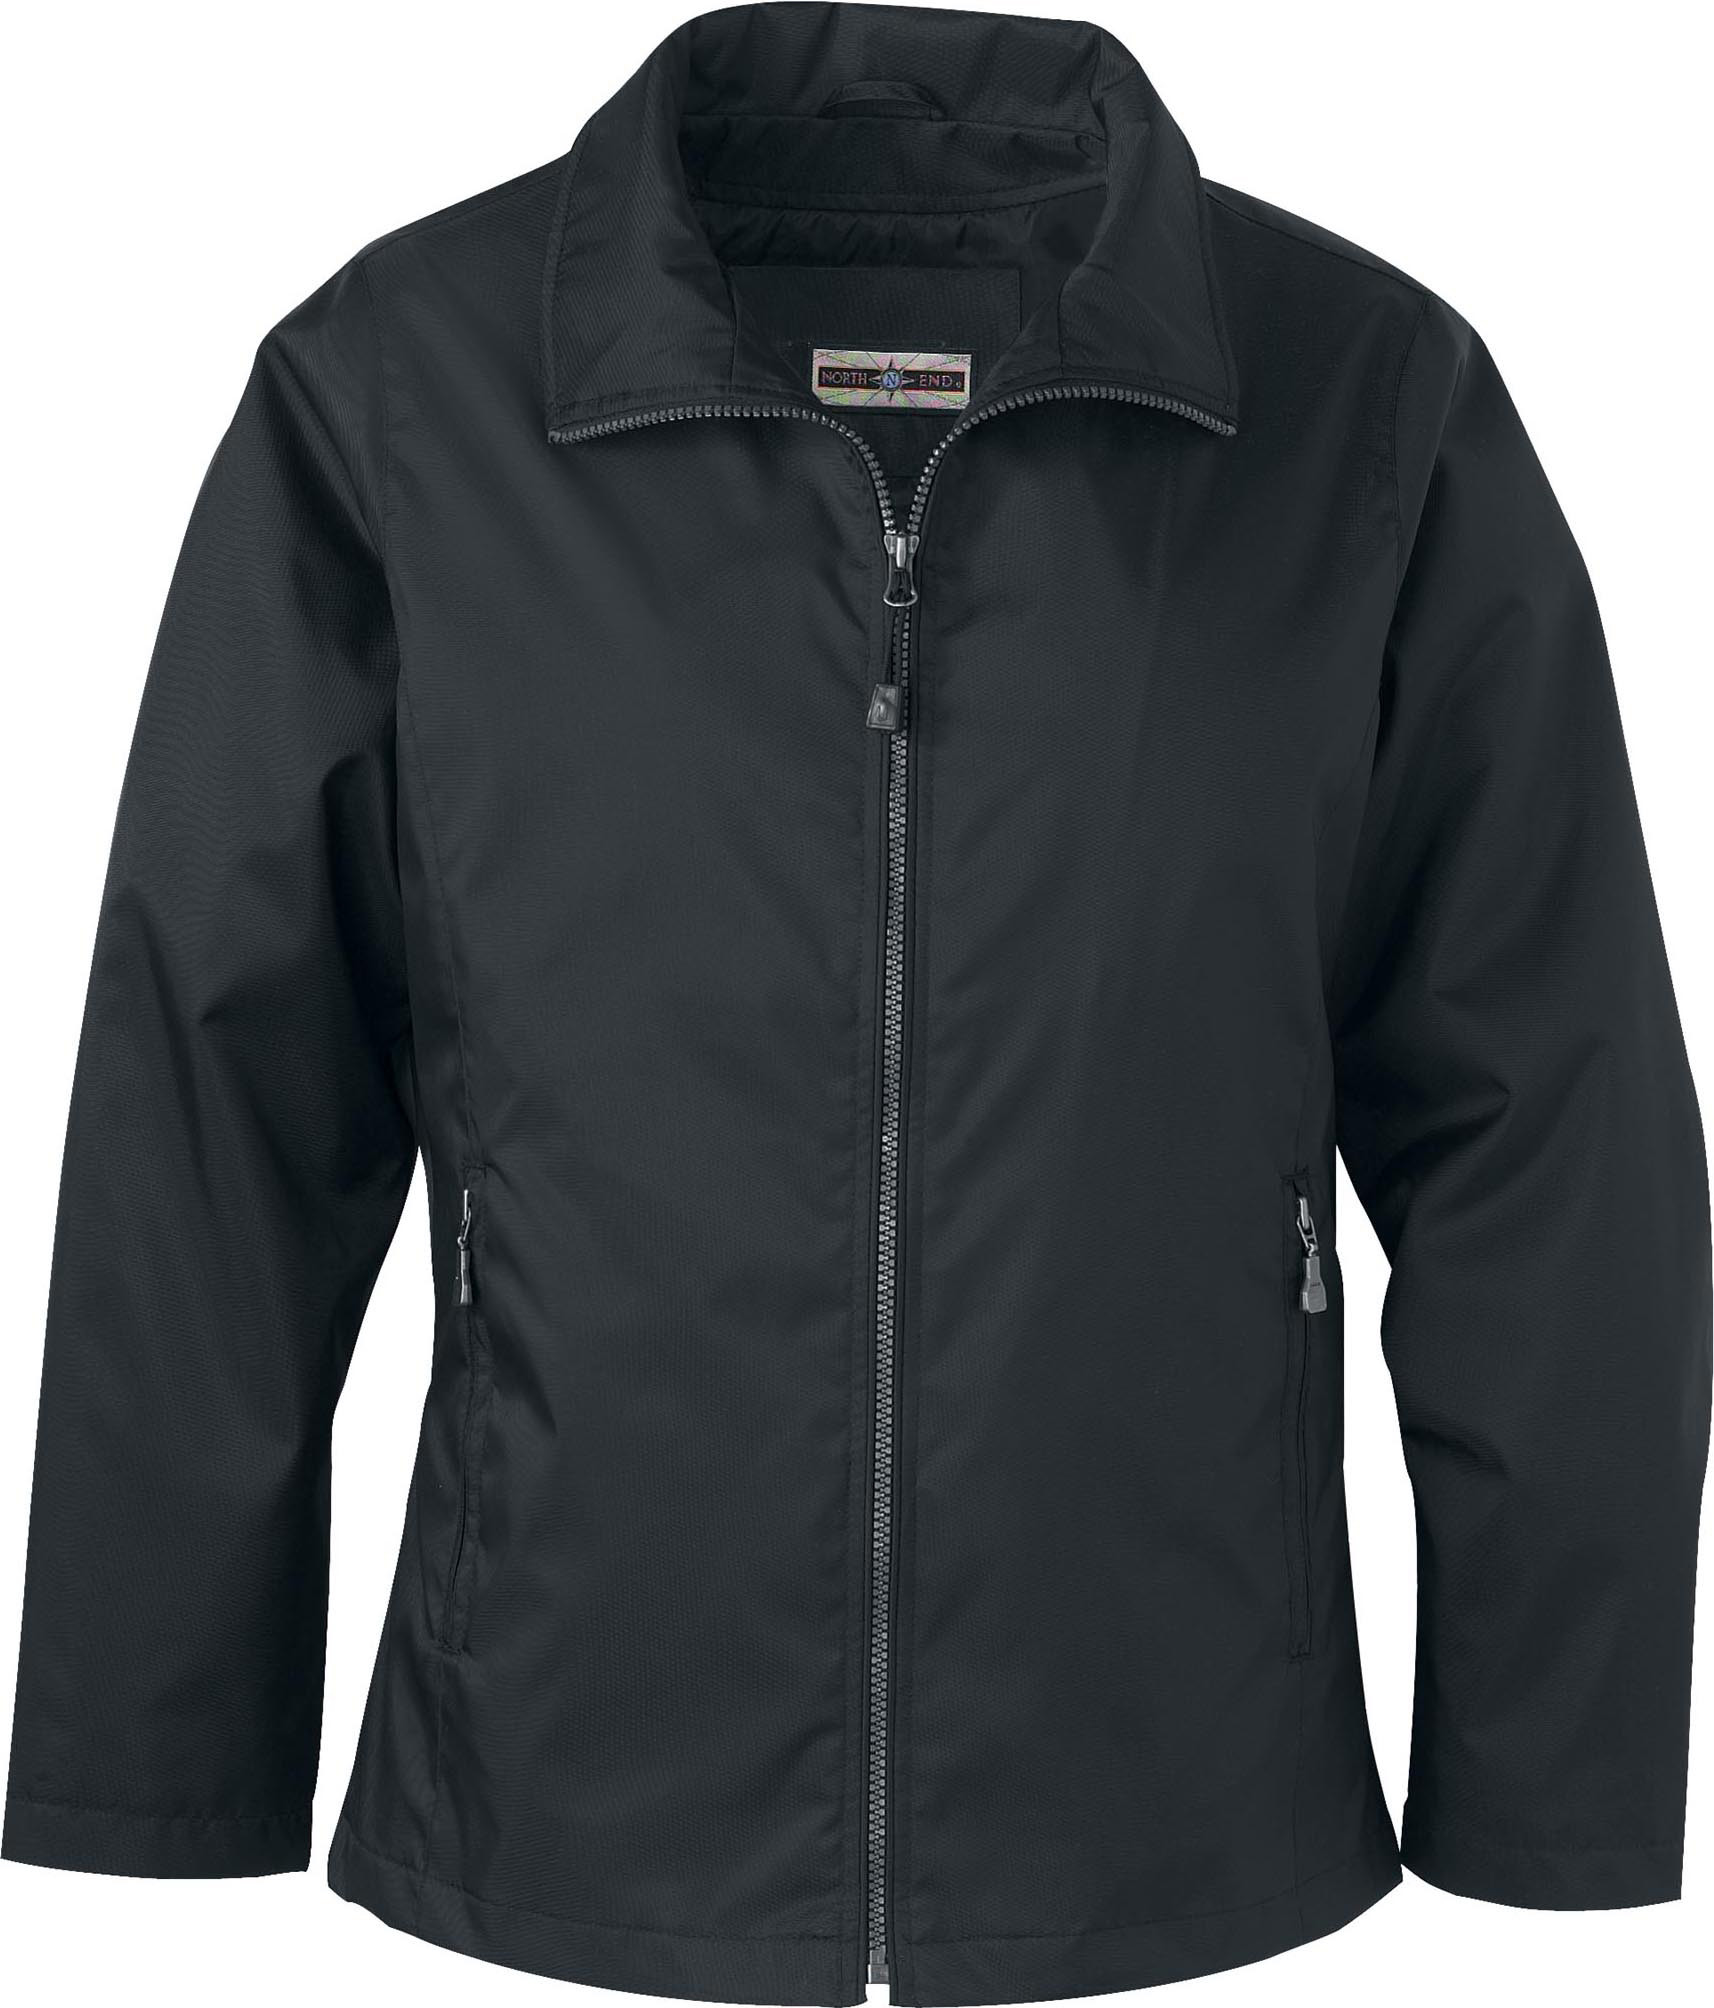 Ash City Lightweight 78007 - Ladies' Oxford Jacket